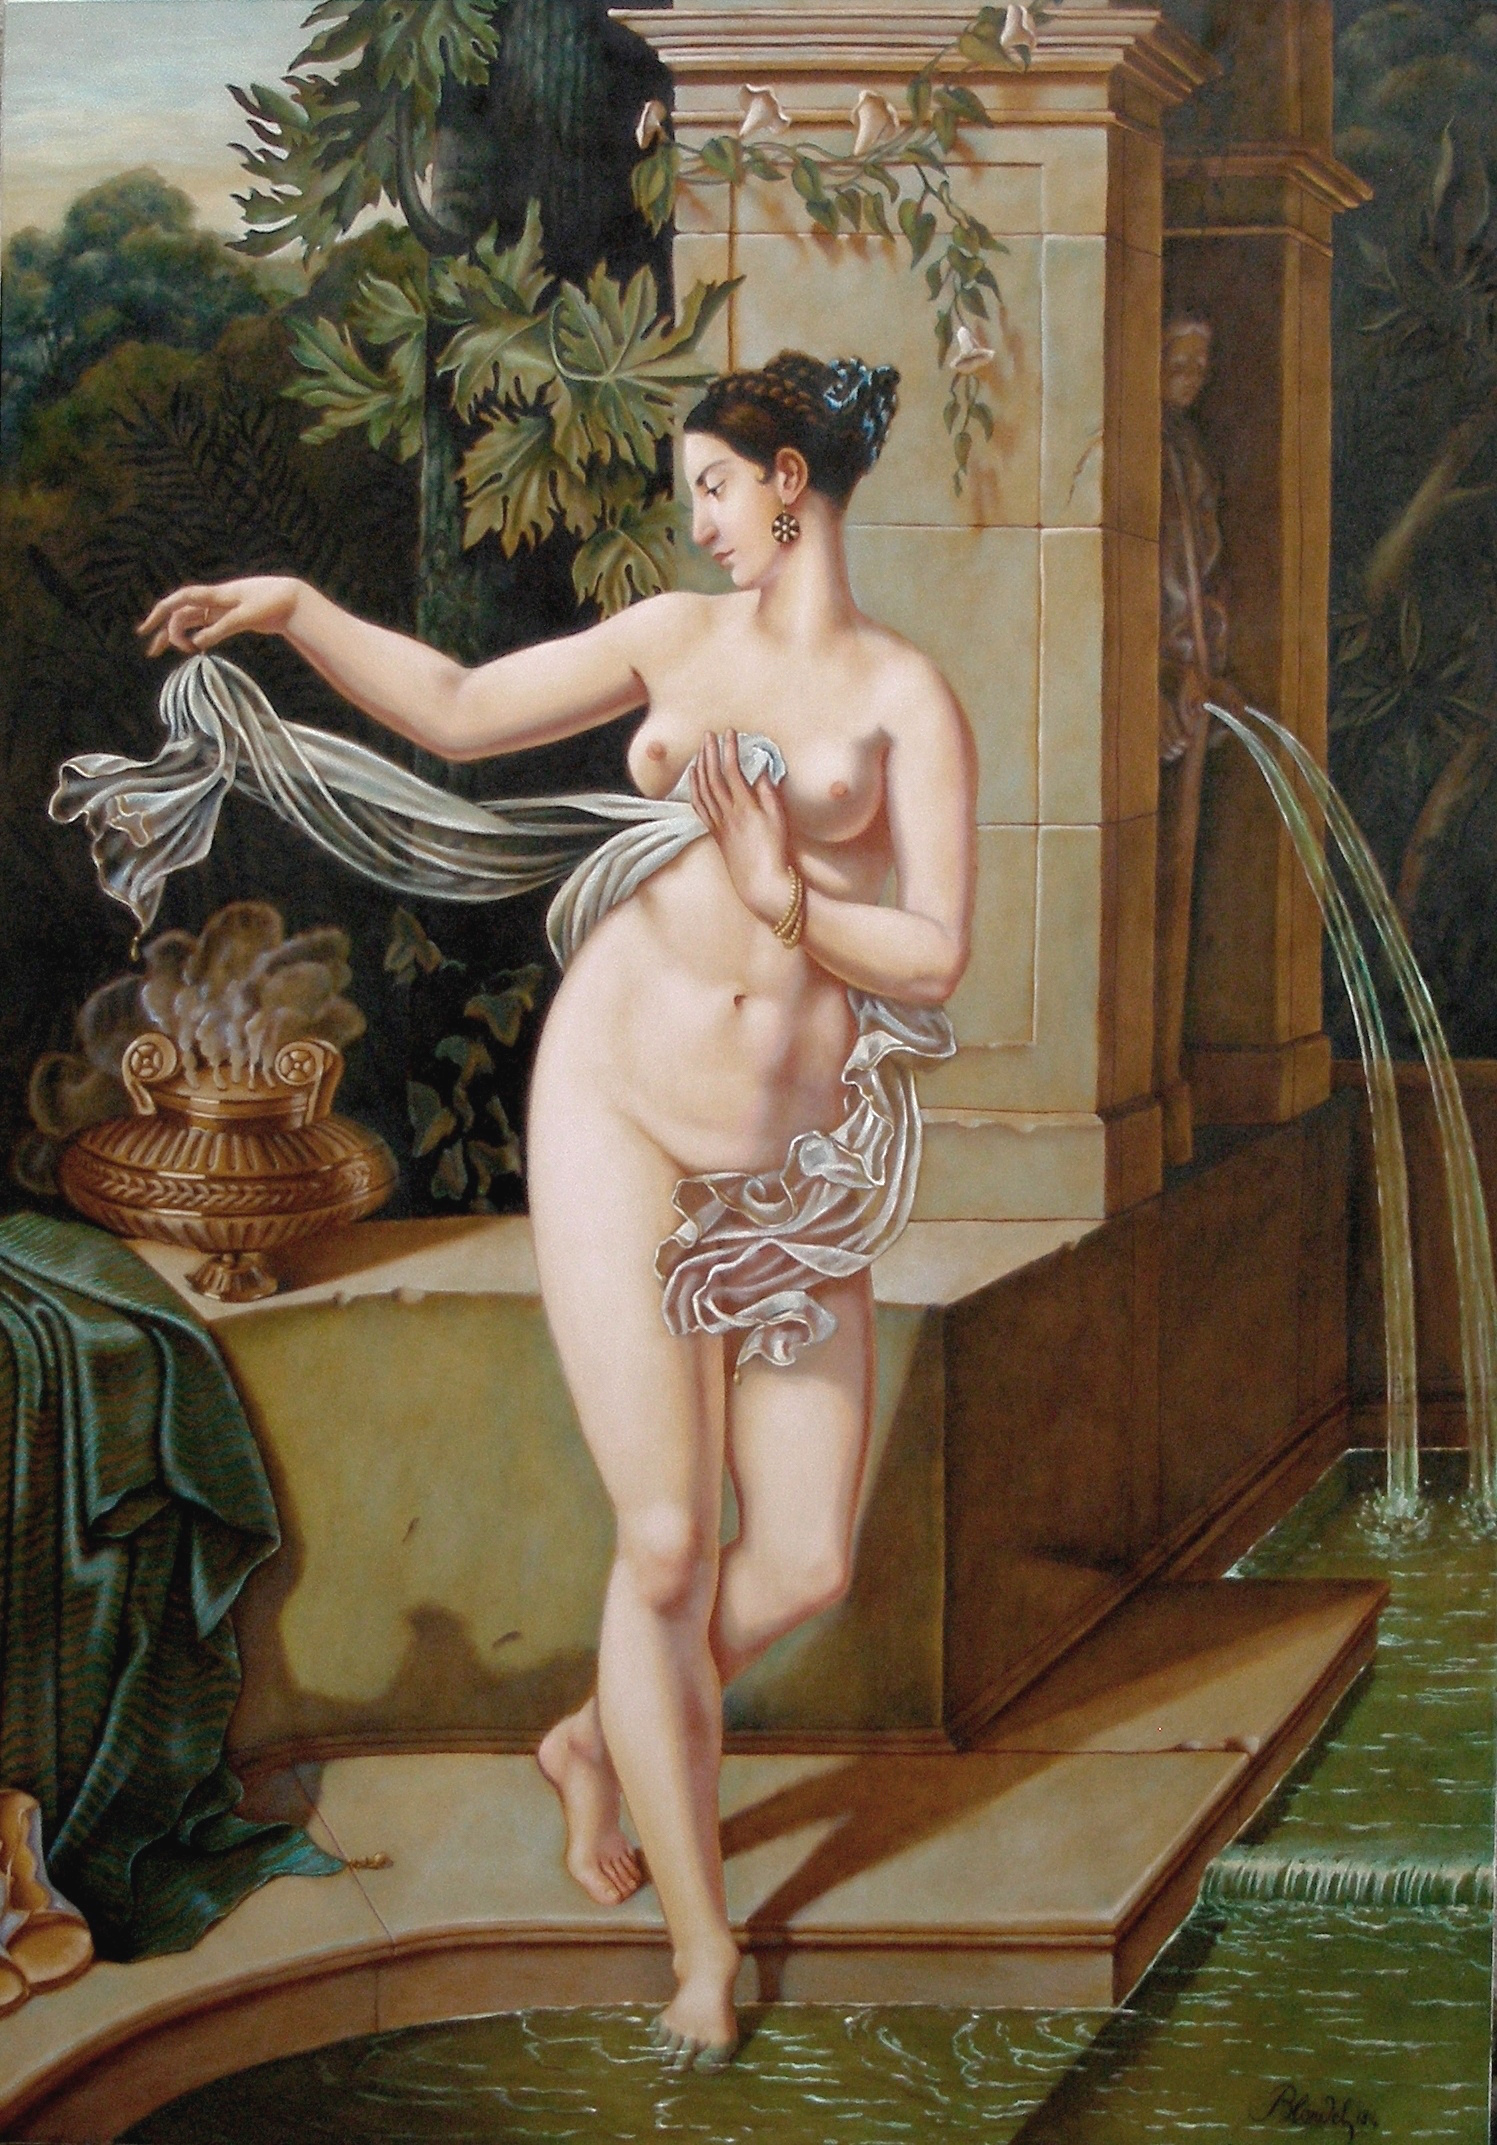 Faithful replica of La Circassienes au Bain by John Parker, after the original 1814 oil painting by Merry-Joseph Blondel. Image: Wiki Commons